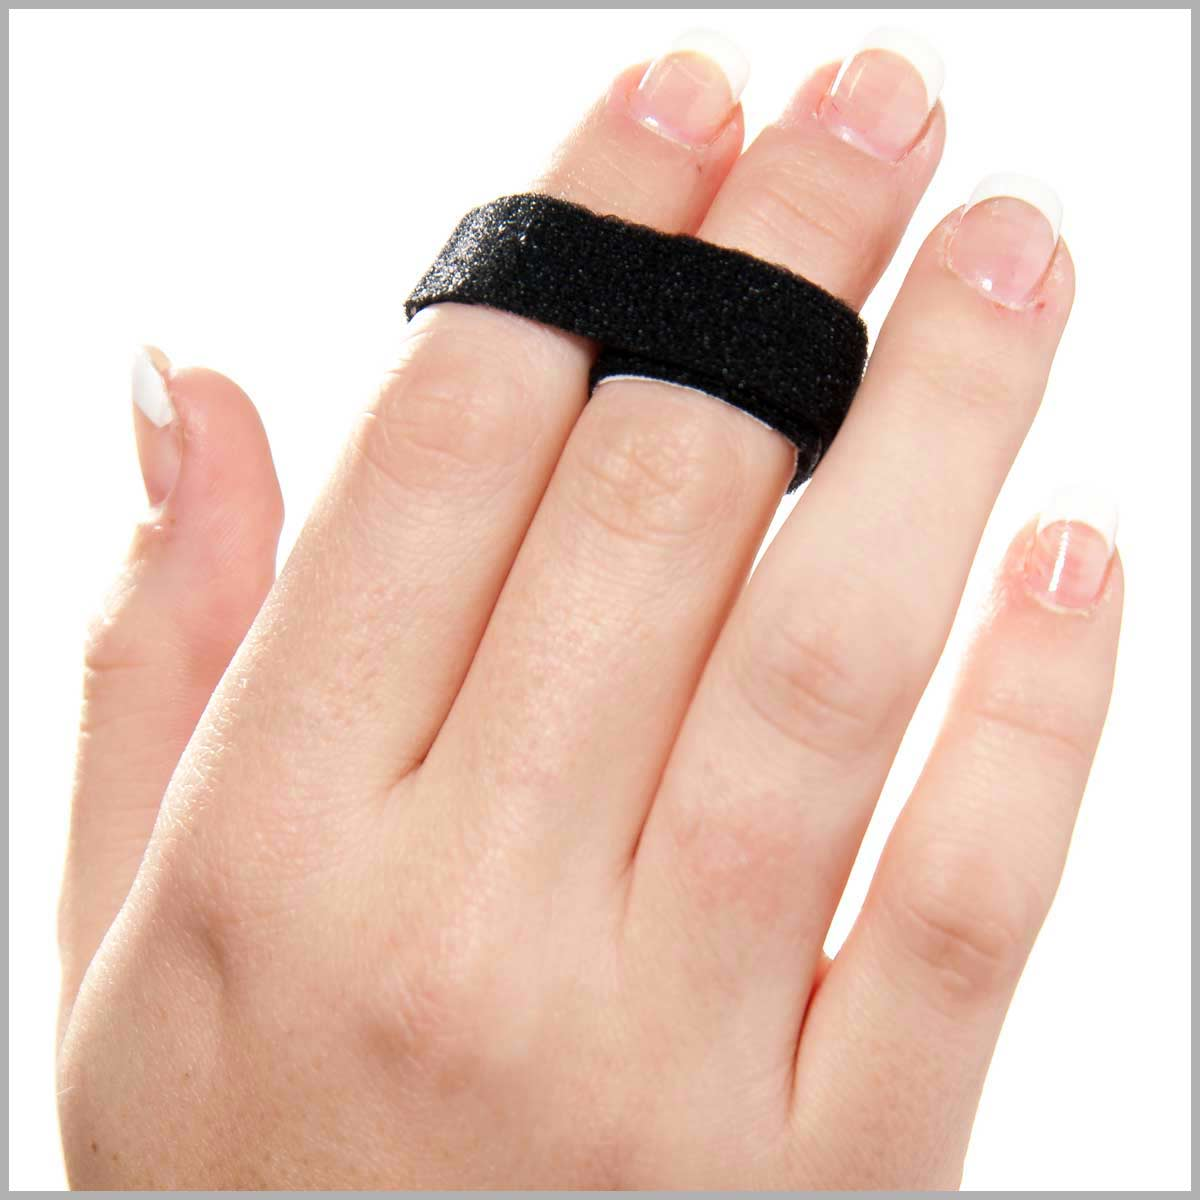 The 1/2-inch 3pp Buddy Loop is ideal for smaller fingers